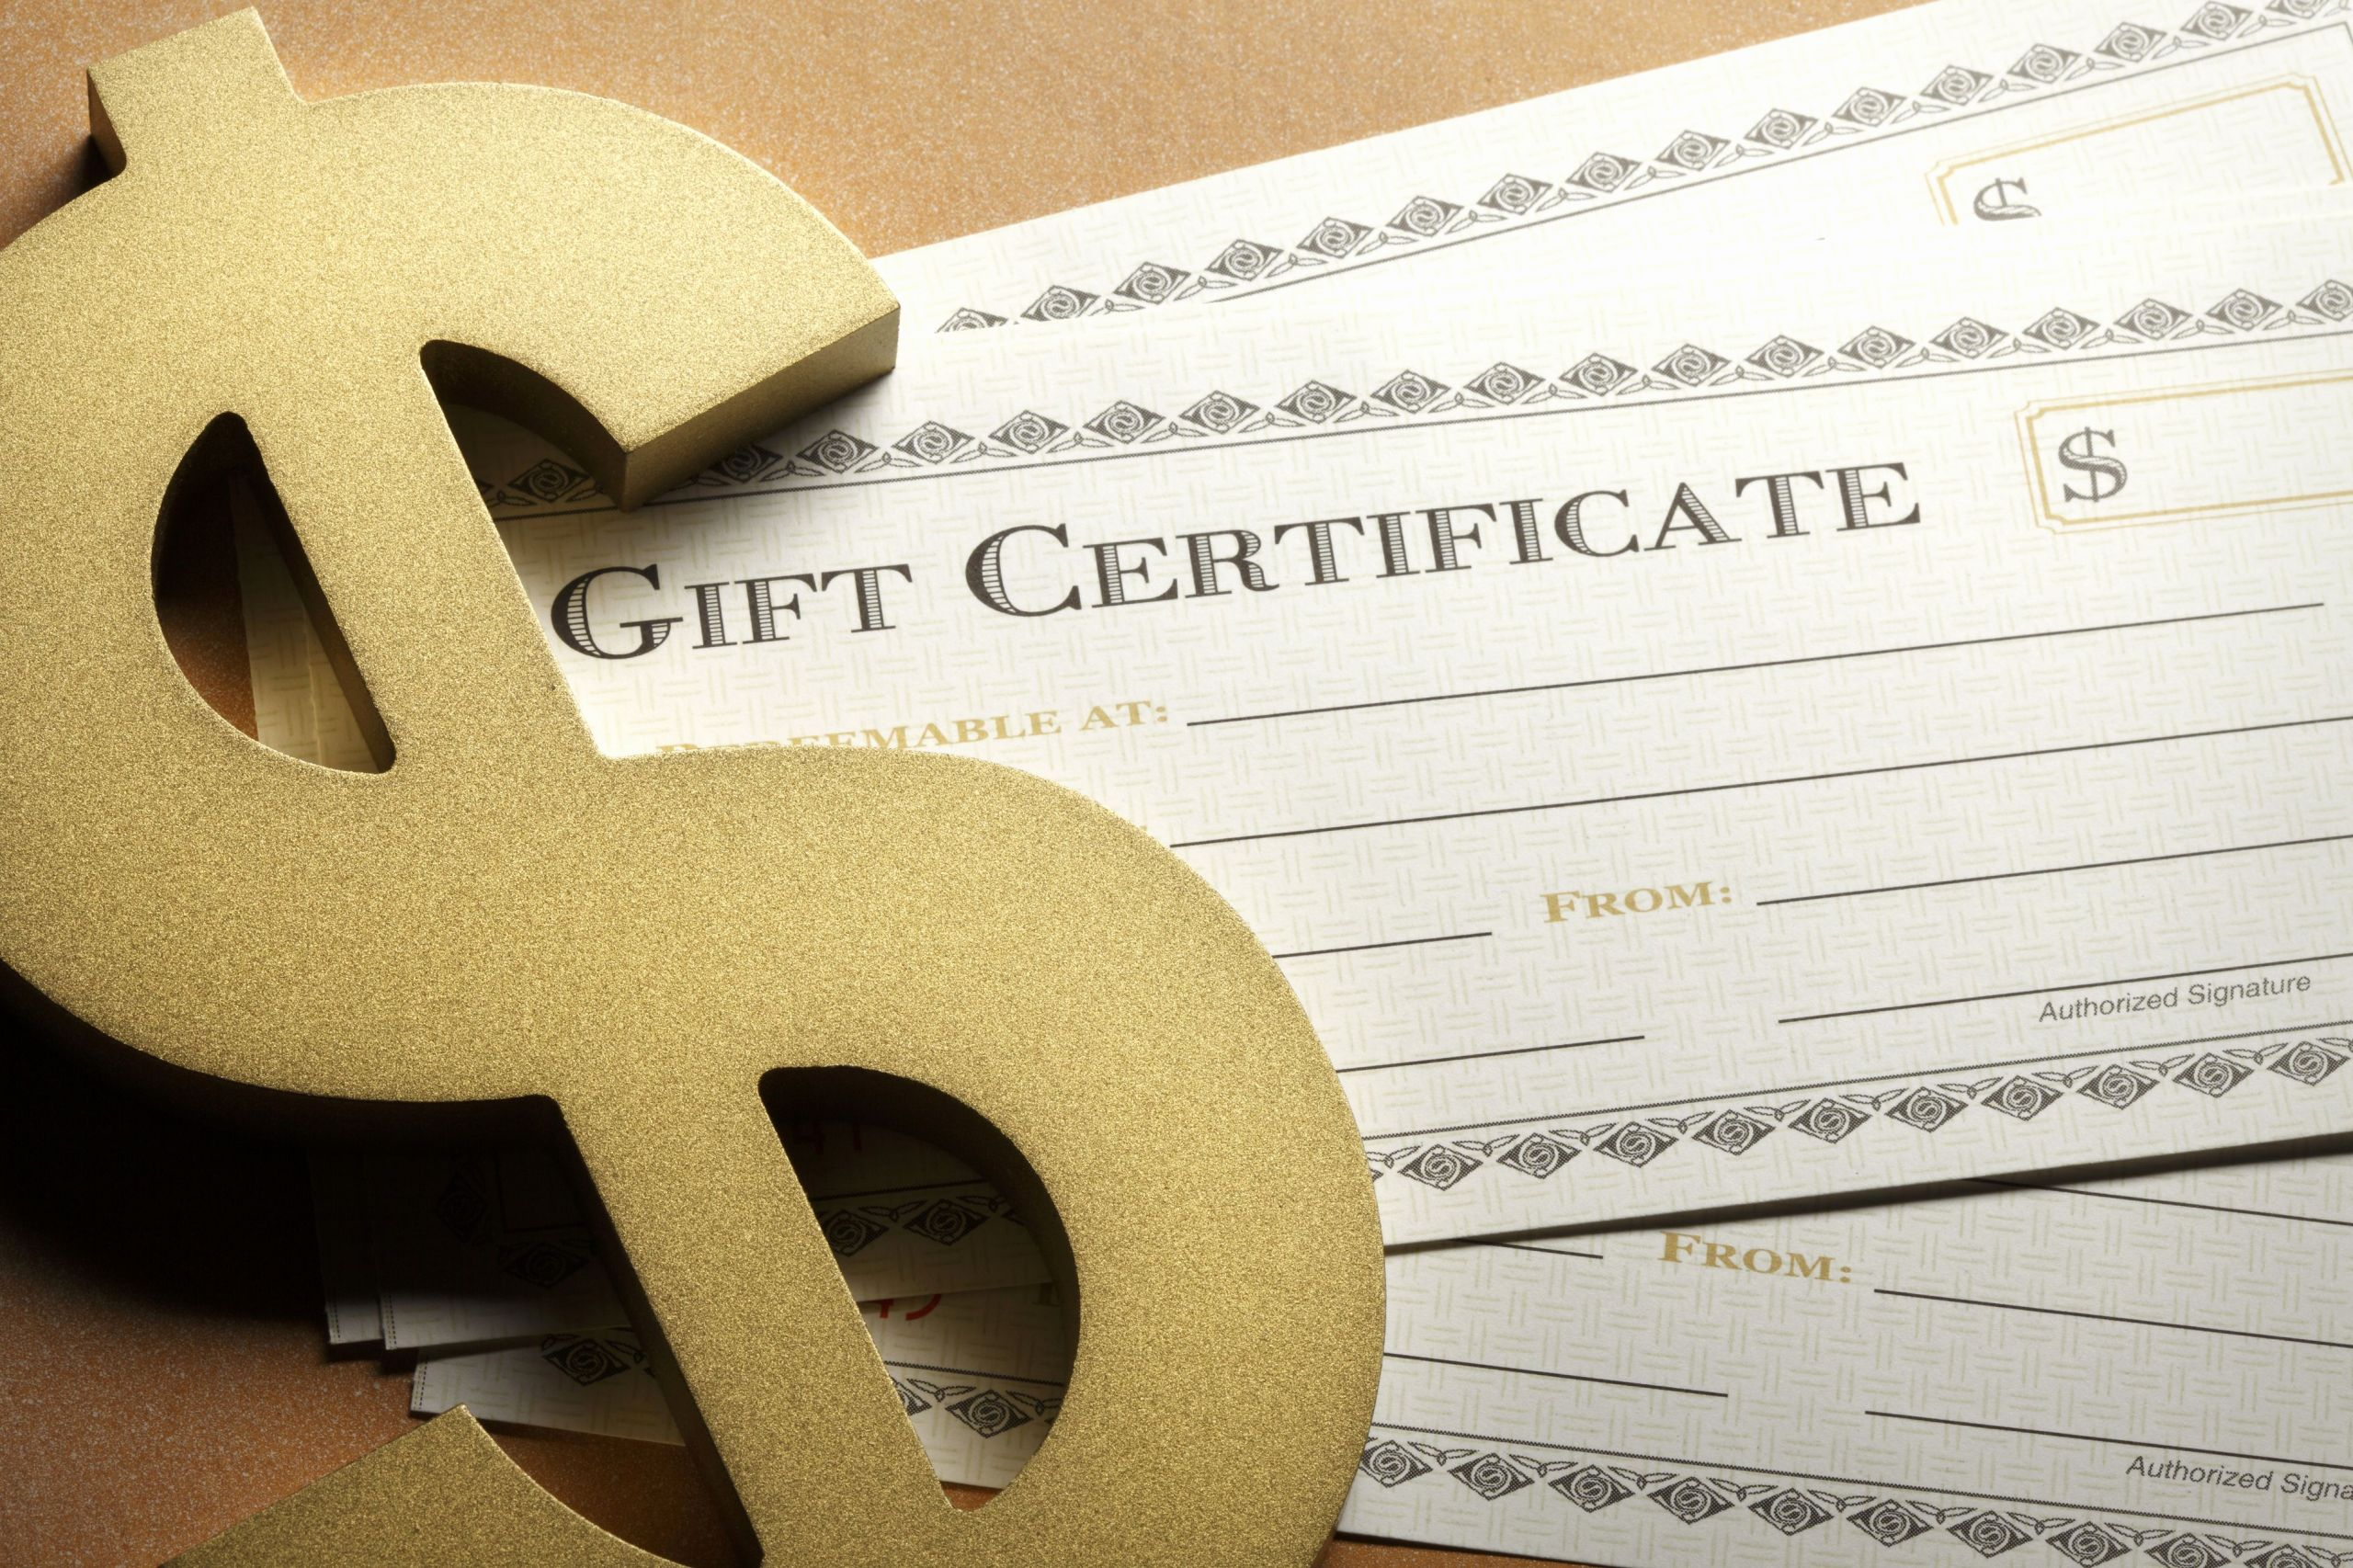 Email Gift Certificate Template Fresh 173 Free Gift Certificate Templates You Can Customize